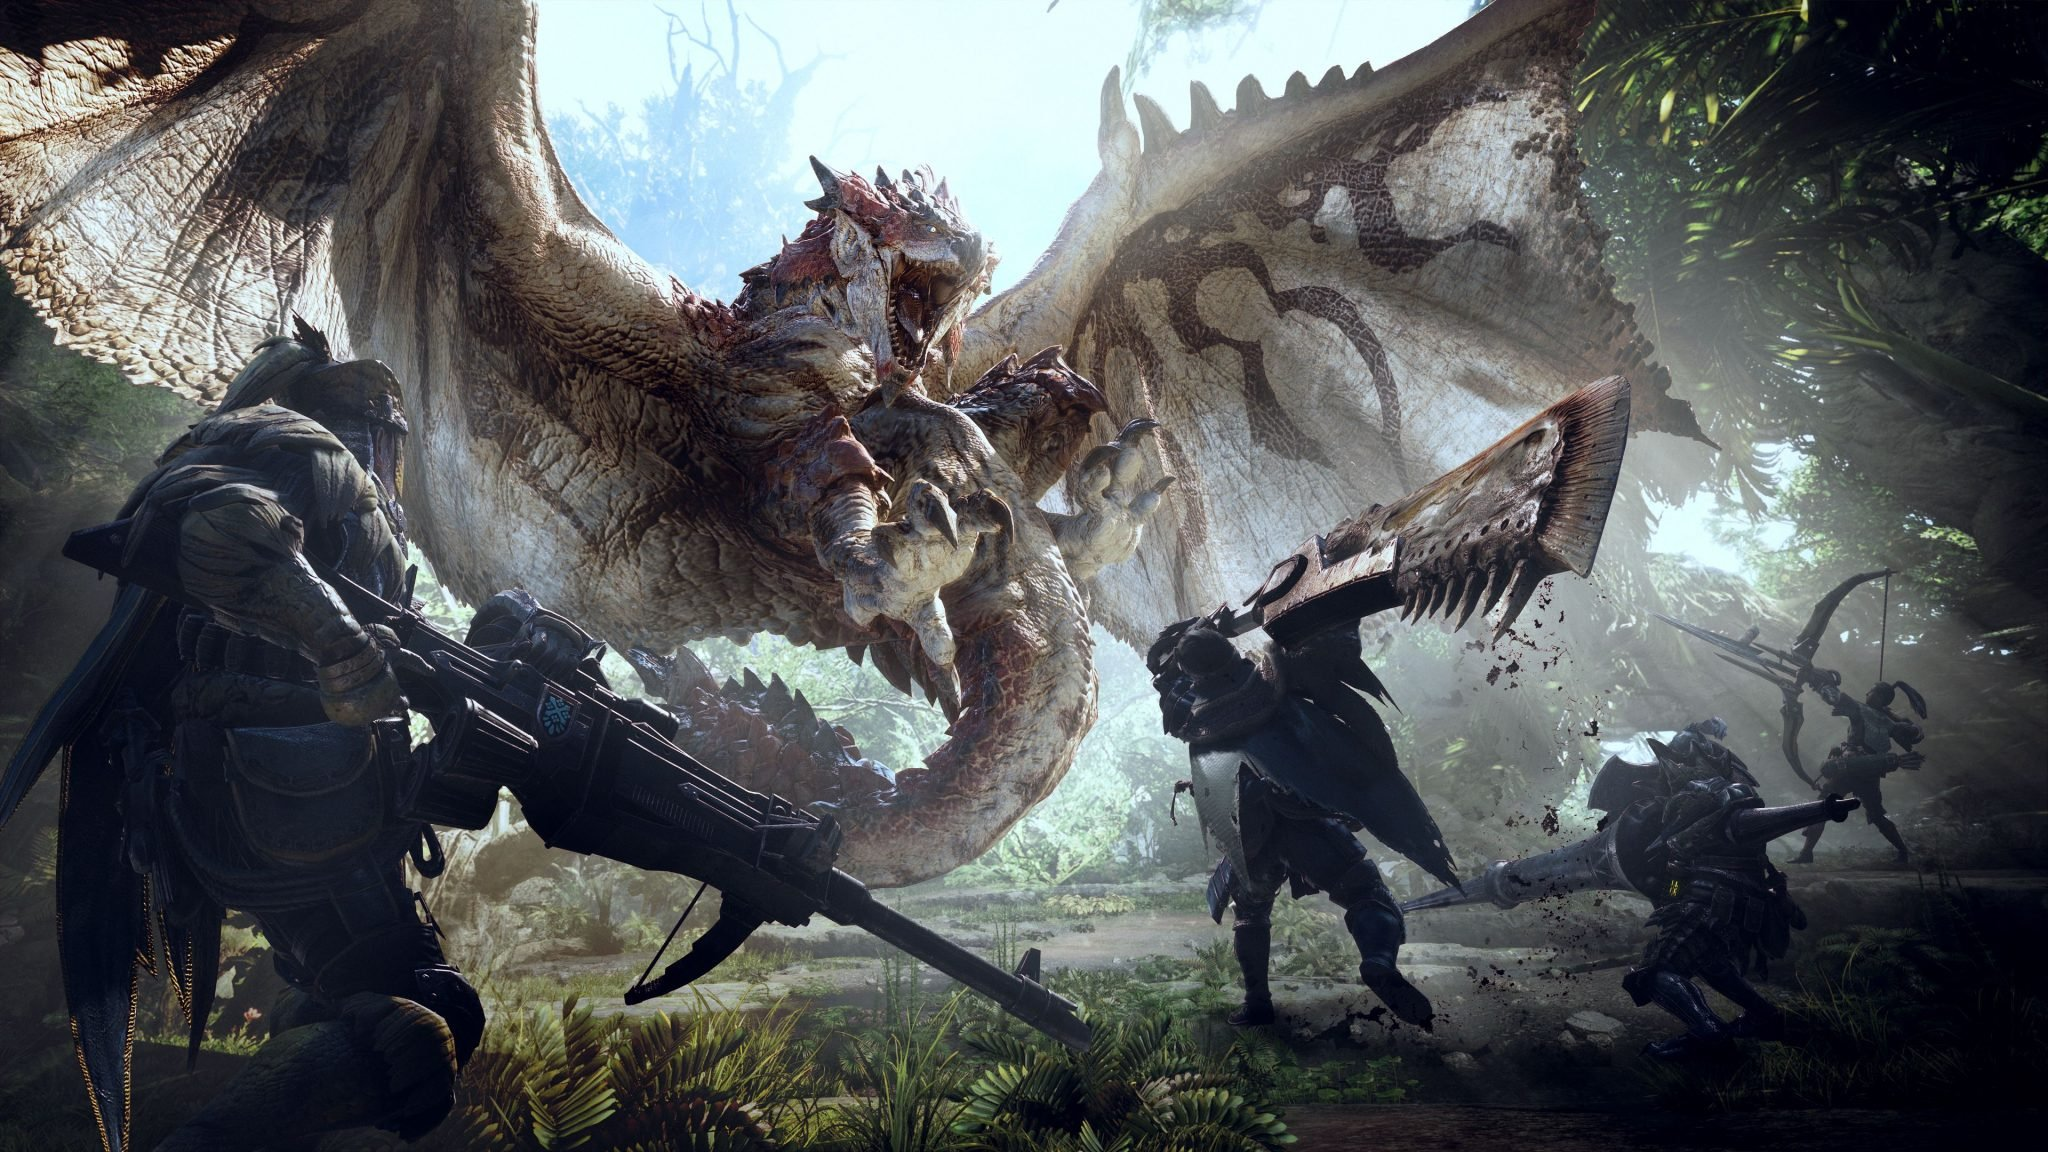 Monster Hunter: World isn't currently confirmed for Nintendo Switch